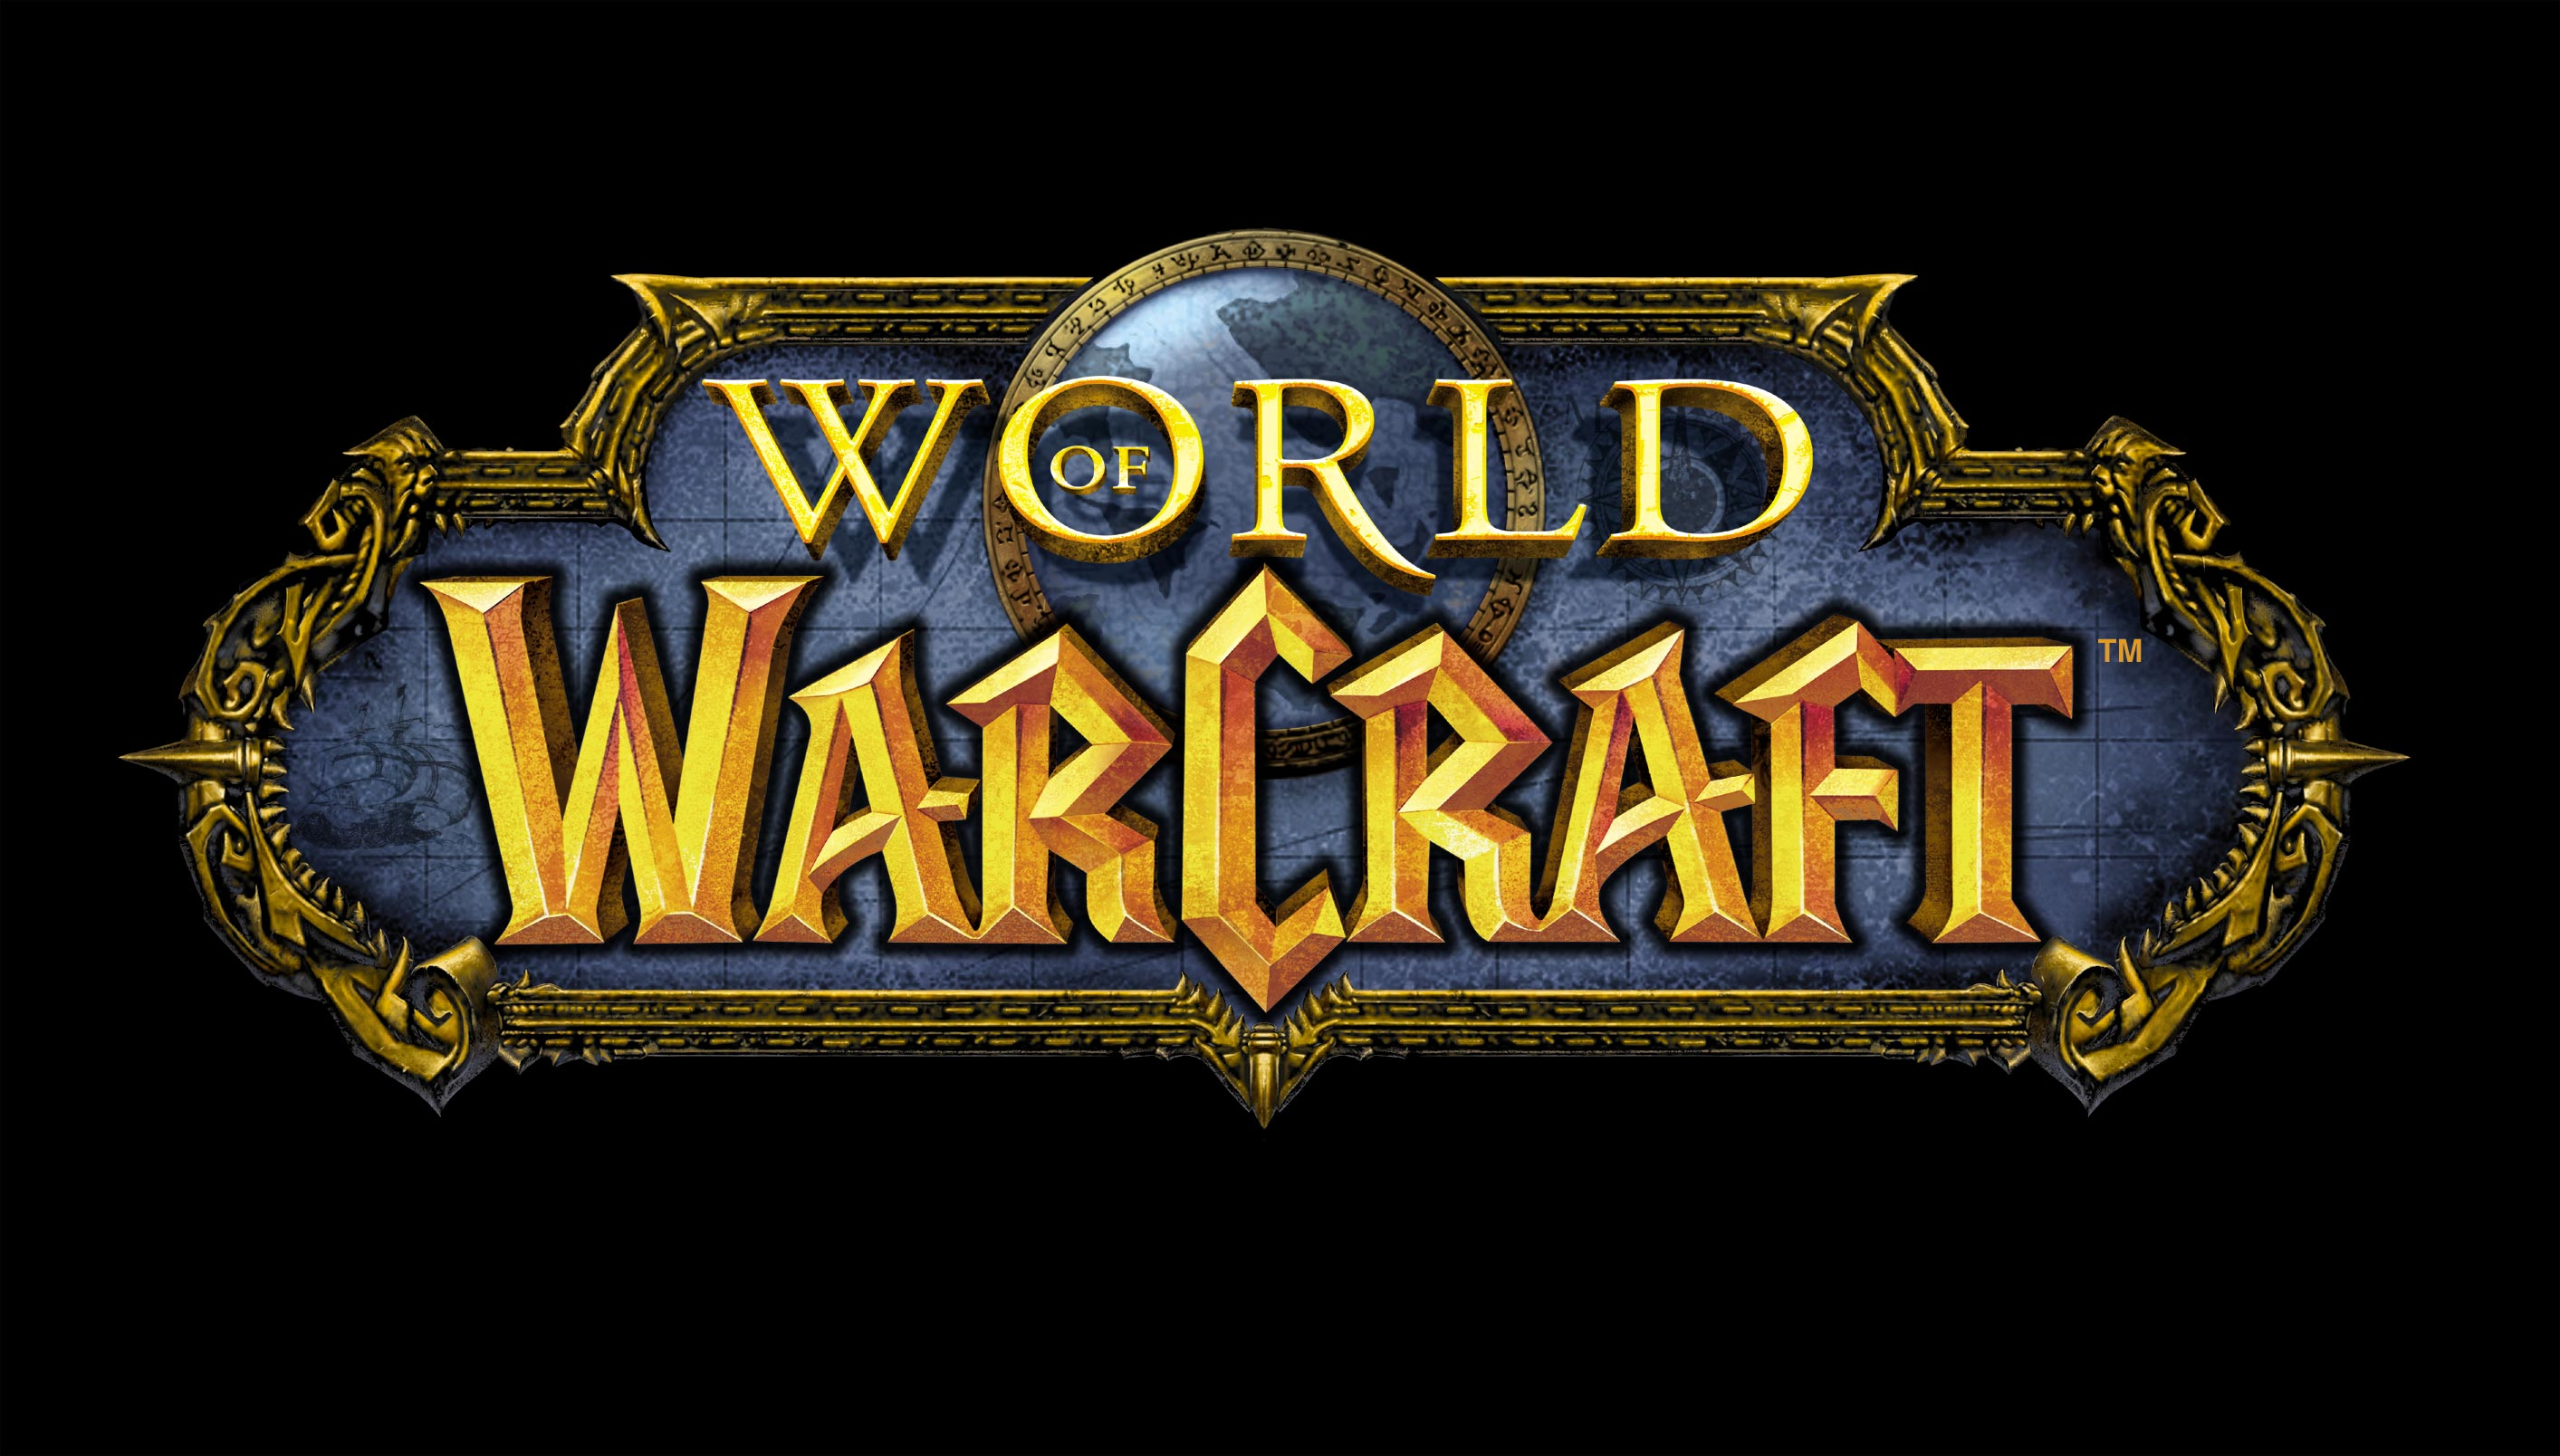 World of Warcraft Stormwind City Looks Amazing Remastered In